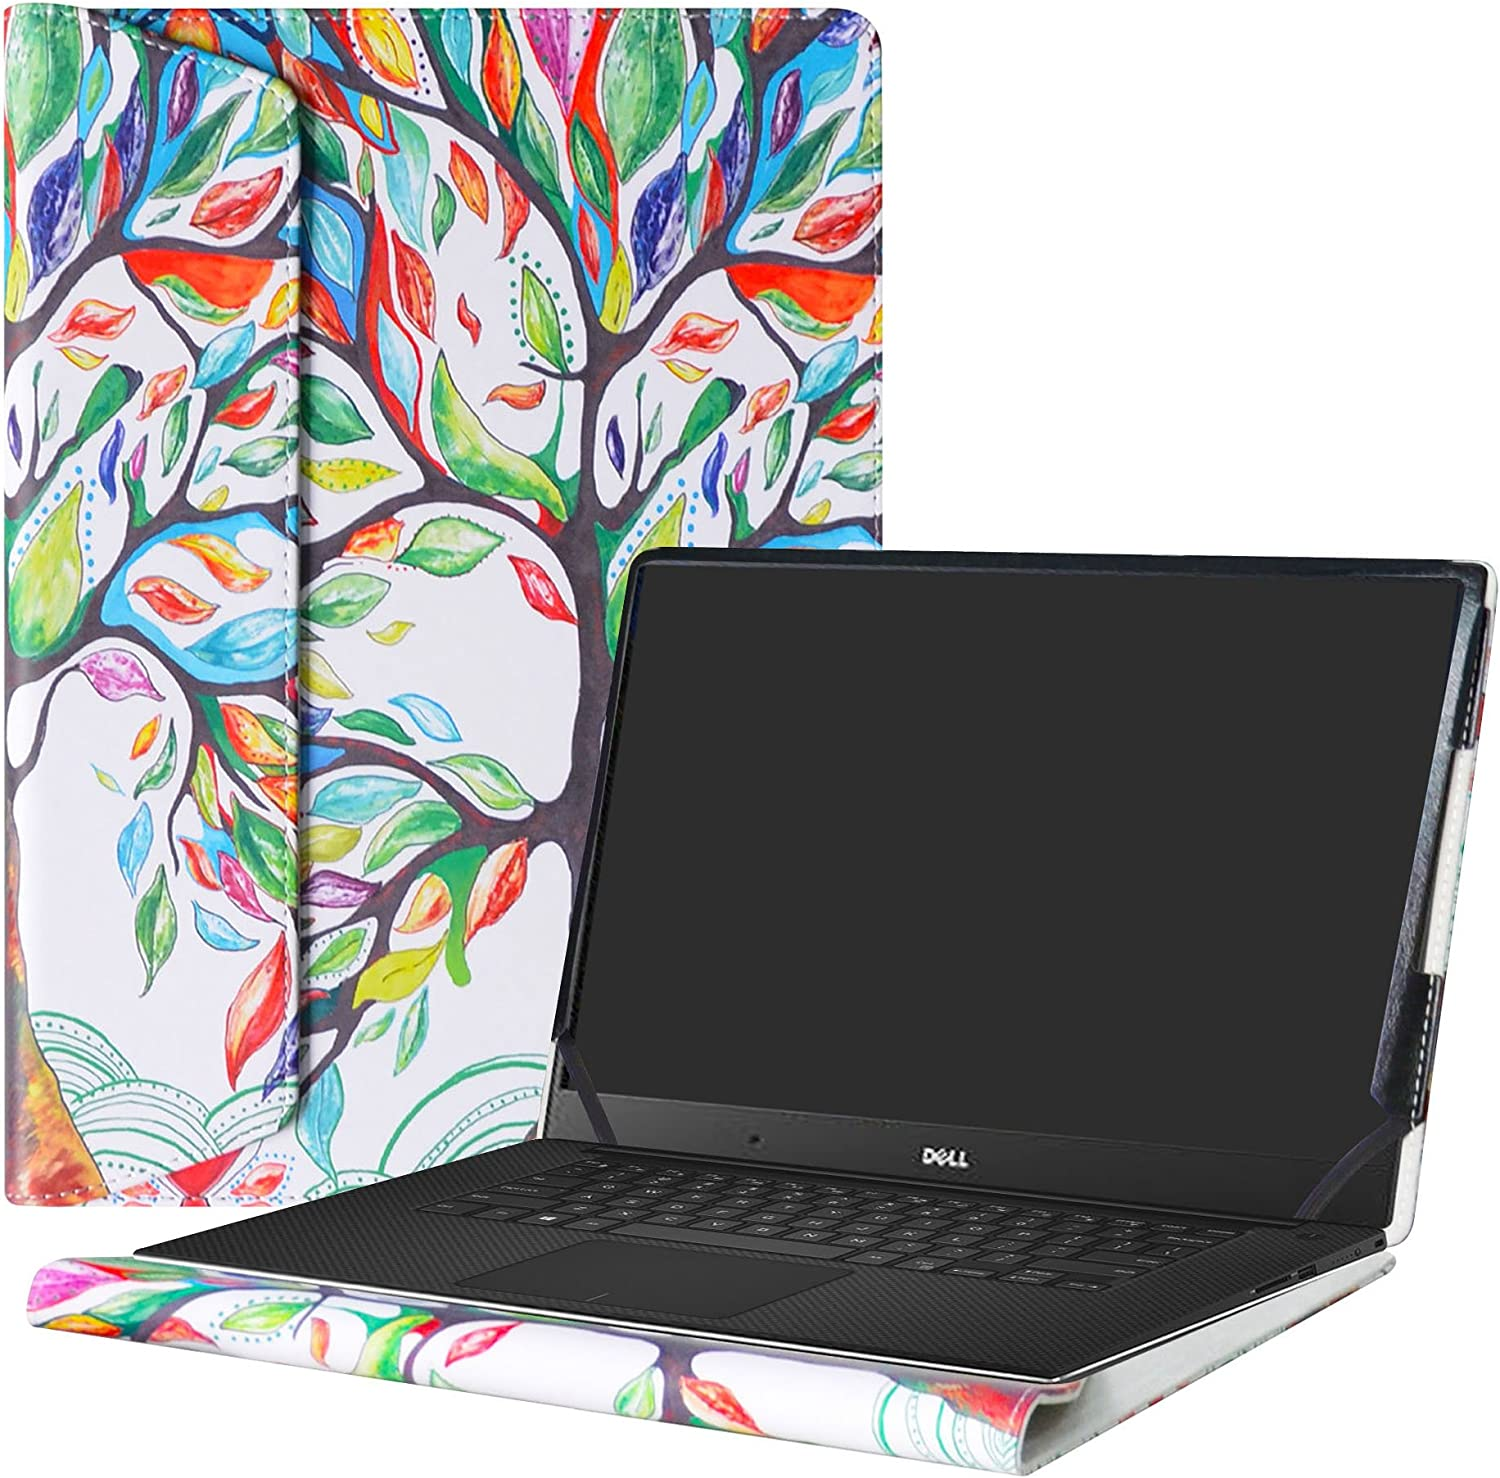 """Alapmk Protective Case Cover for 15.6"""" Dell XPS 15 9570 9560 9550/XPS 15 2 in 1 9575/Precision 2-in-1 5530/Precision 15 5530 Laptop(Note:Not fit Older xps 15 9530 L501X L502X L521X),Love Tree"""